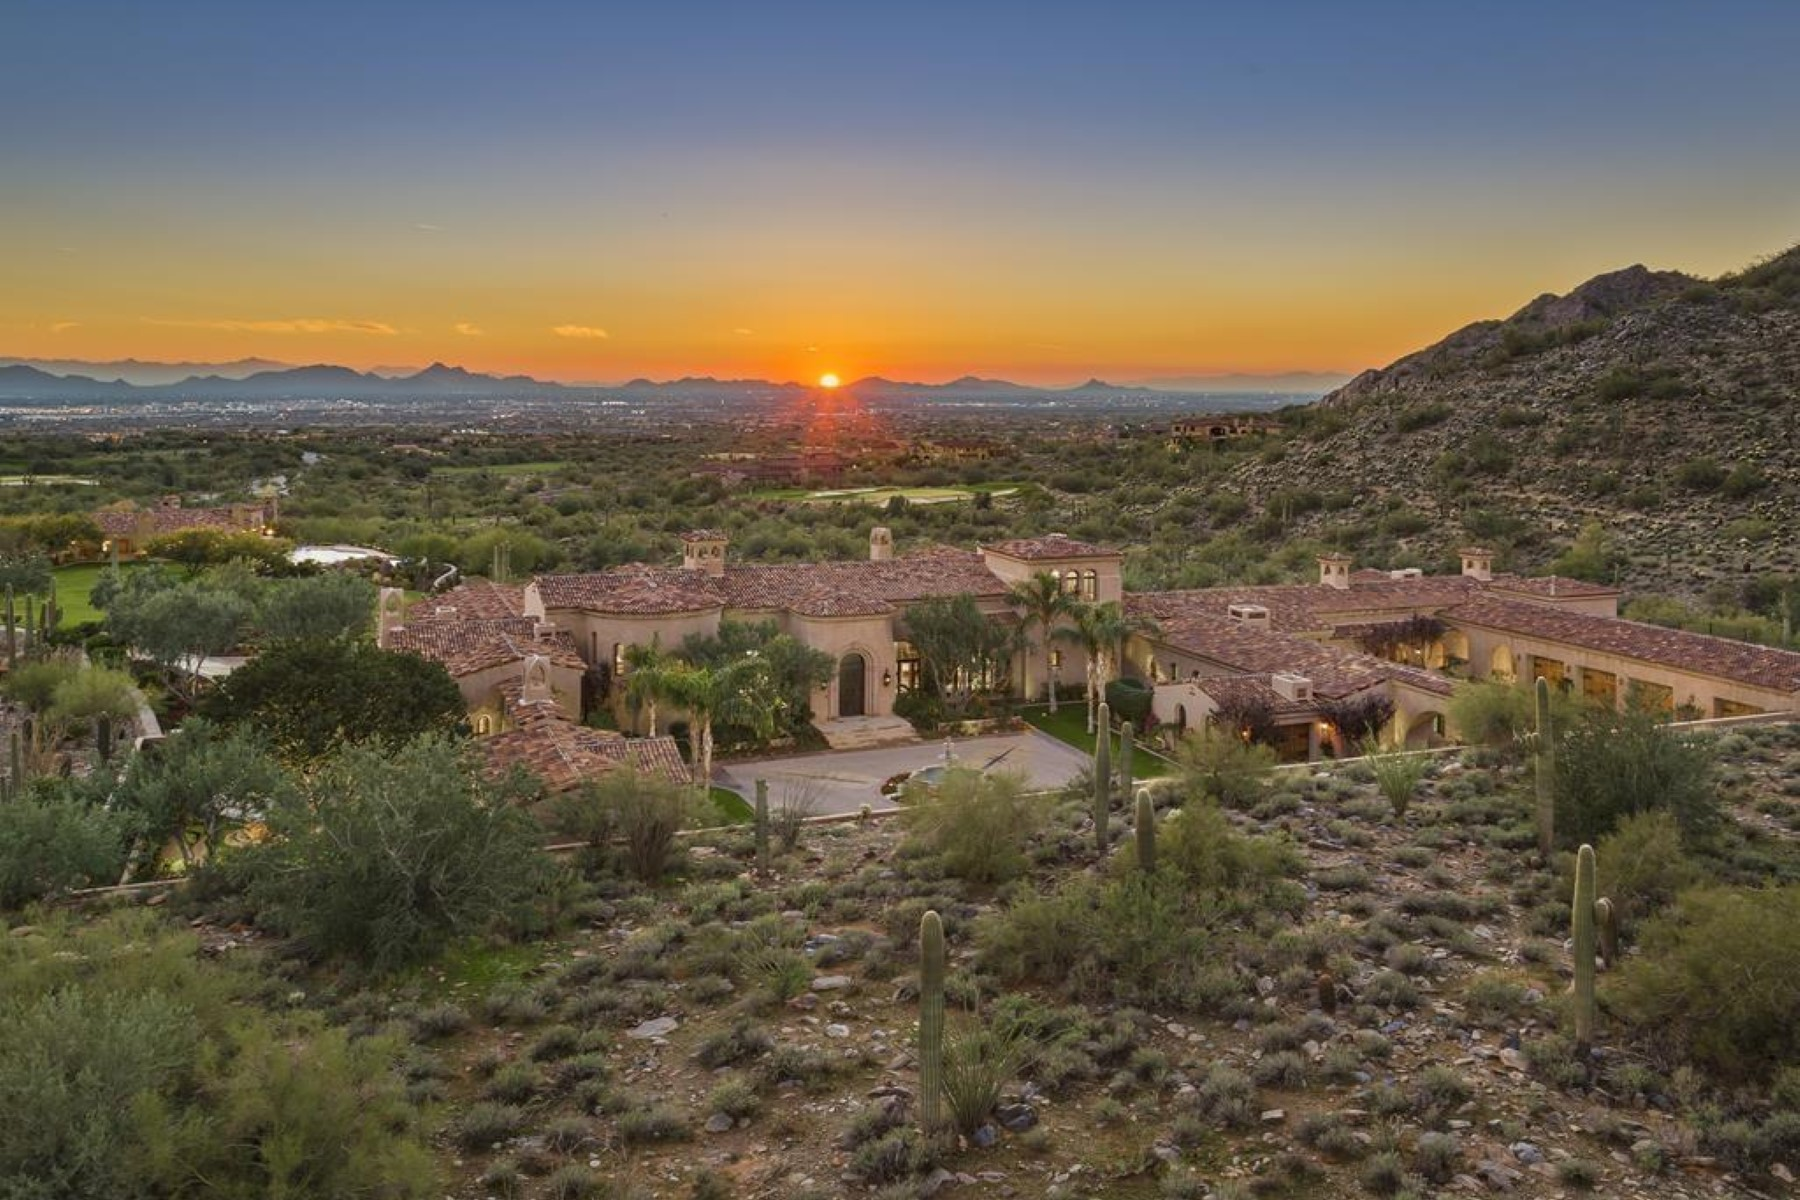 Property for Sale at Silverleaf at DC Ranch 10696 E Wingspan Way, Scottsdale, Arizona 85255 United States